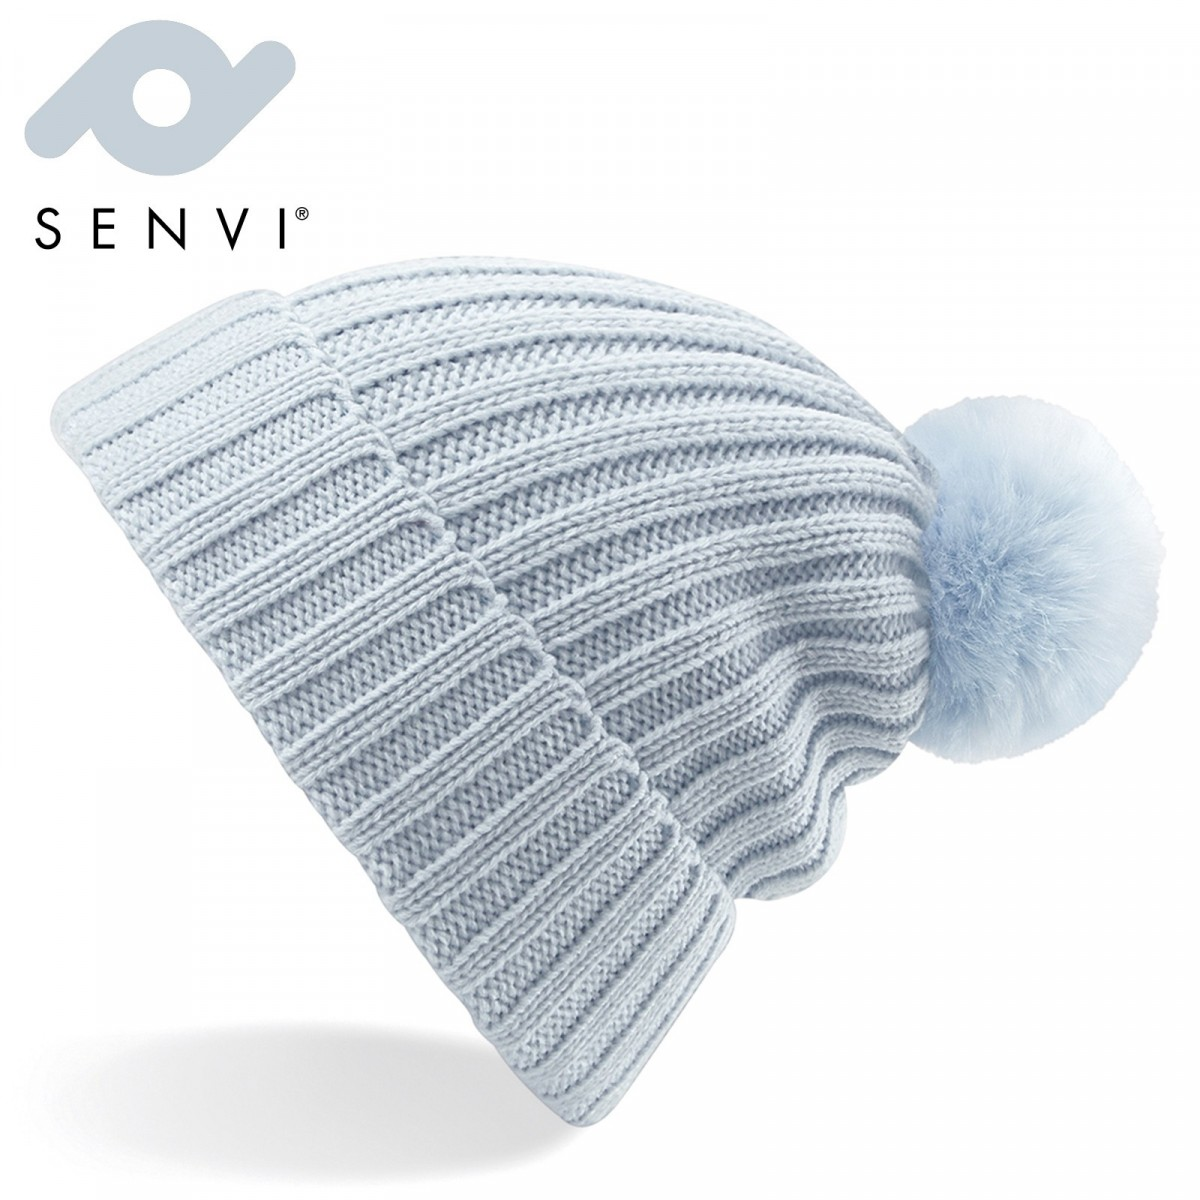 Senvi Arosa Fur Pom Pom Beanie Pastel Blauw (One size fits all)